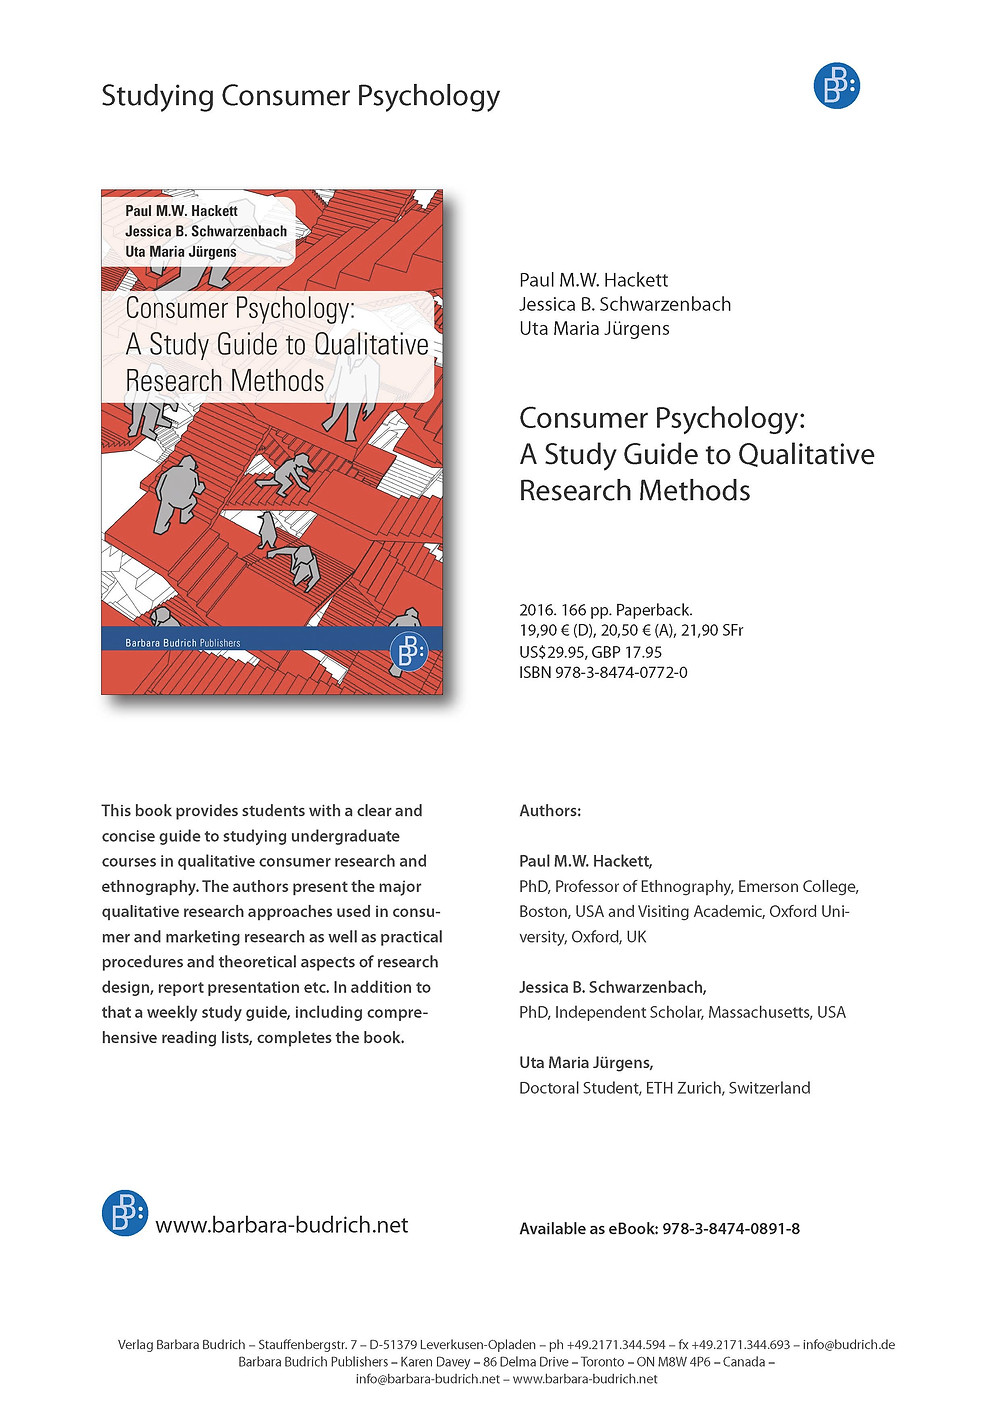 The textbook is a guide to studying consumer psychology in terms of the qualitative approaches typically sued to reveal understanding. We have produced a book that is short and inexpensive for students to purchase. Sections of the book introduce students to theoretical aspects of research procedures and then take them through the applied usage of each approach. There are many references provided for each approach. A sample syllabus is provided as is the use of the mapping sentence to plan and coordinate complex research projects. This study guide links with my edited collection: Qualitative Research Methods in Consumer Psychology: Ethnography and Culture which provides in depth explorations of the area covered in the study guide.